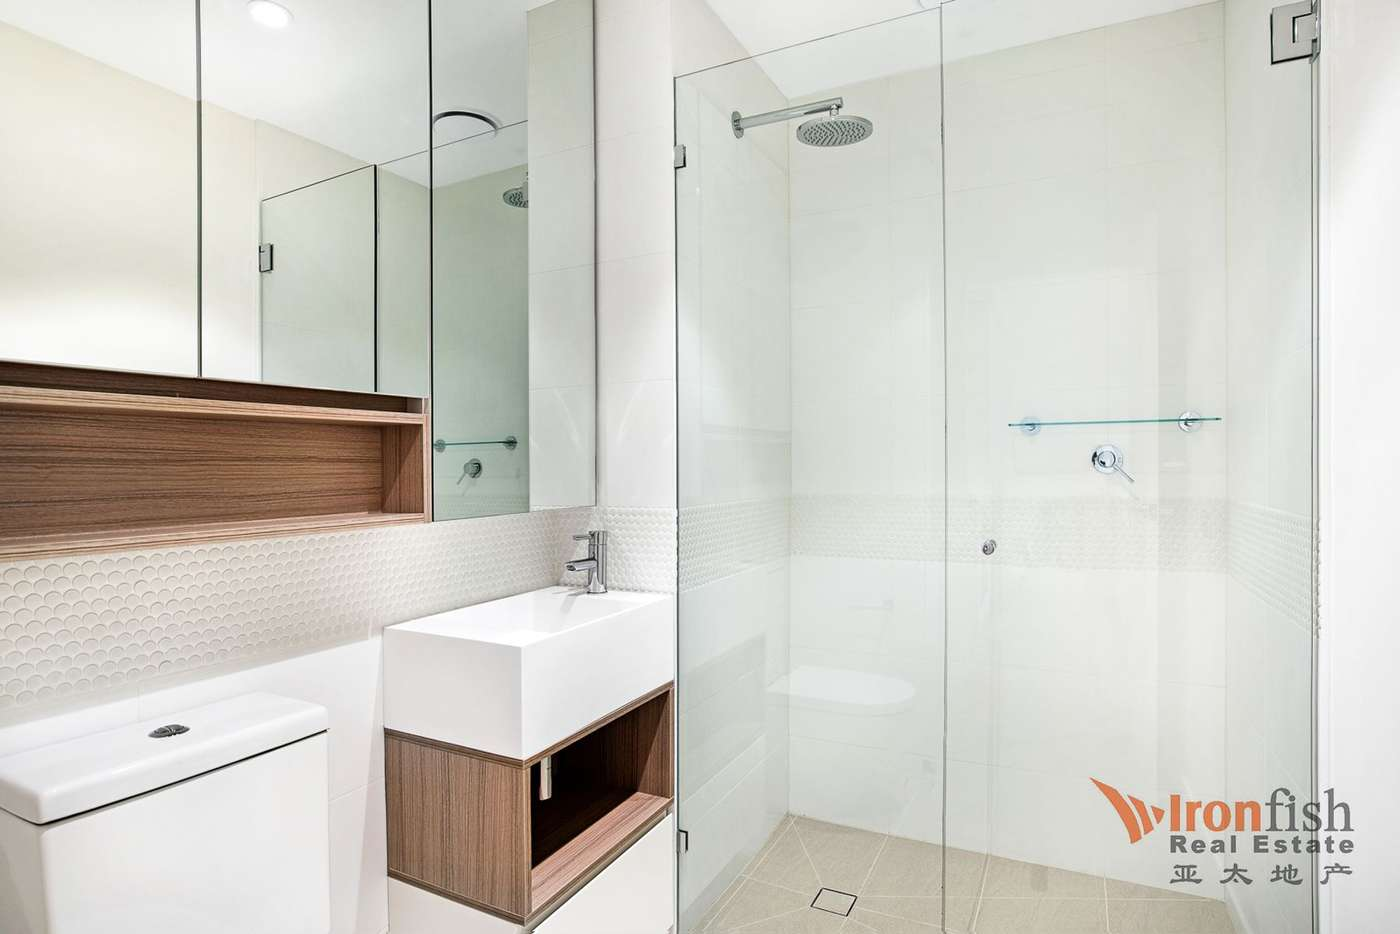 Fifth view of Homely apartment listing, 313/140 Dudley Street, West Melbourne VIC 3003